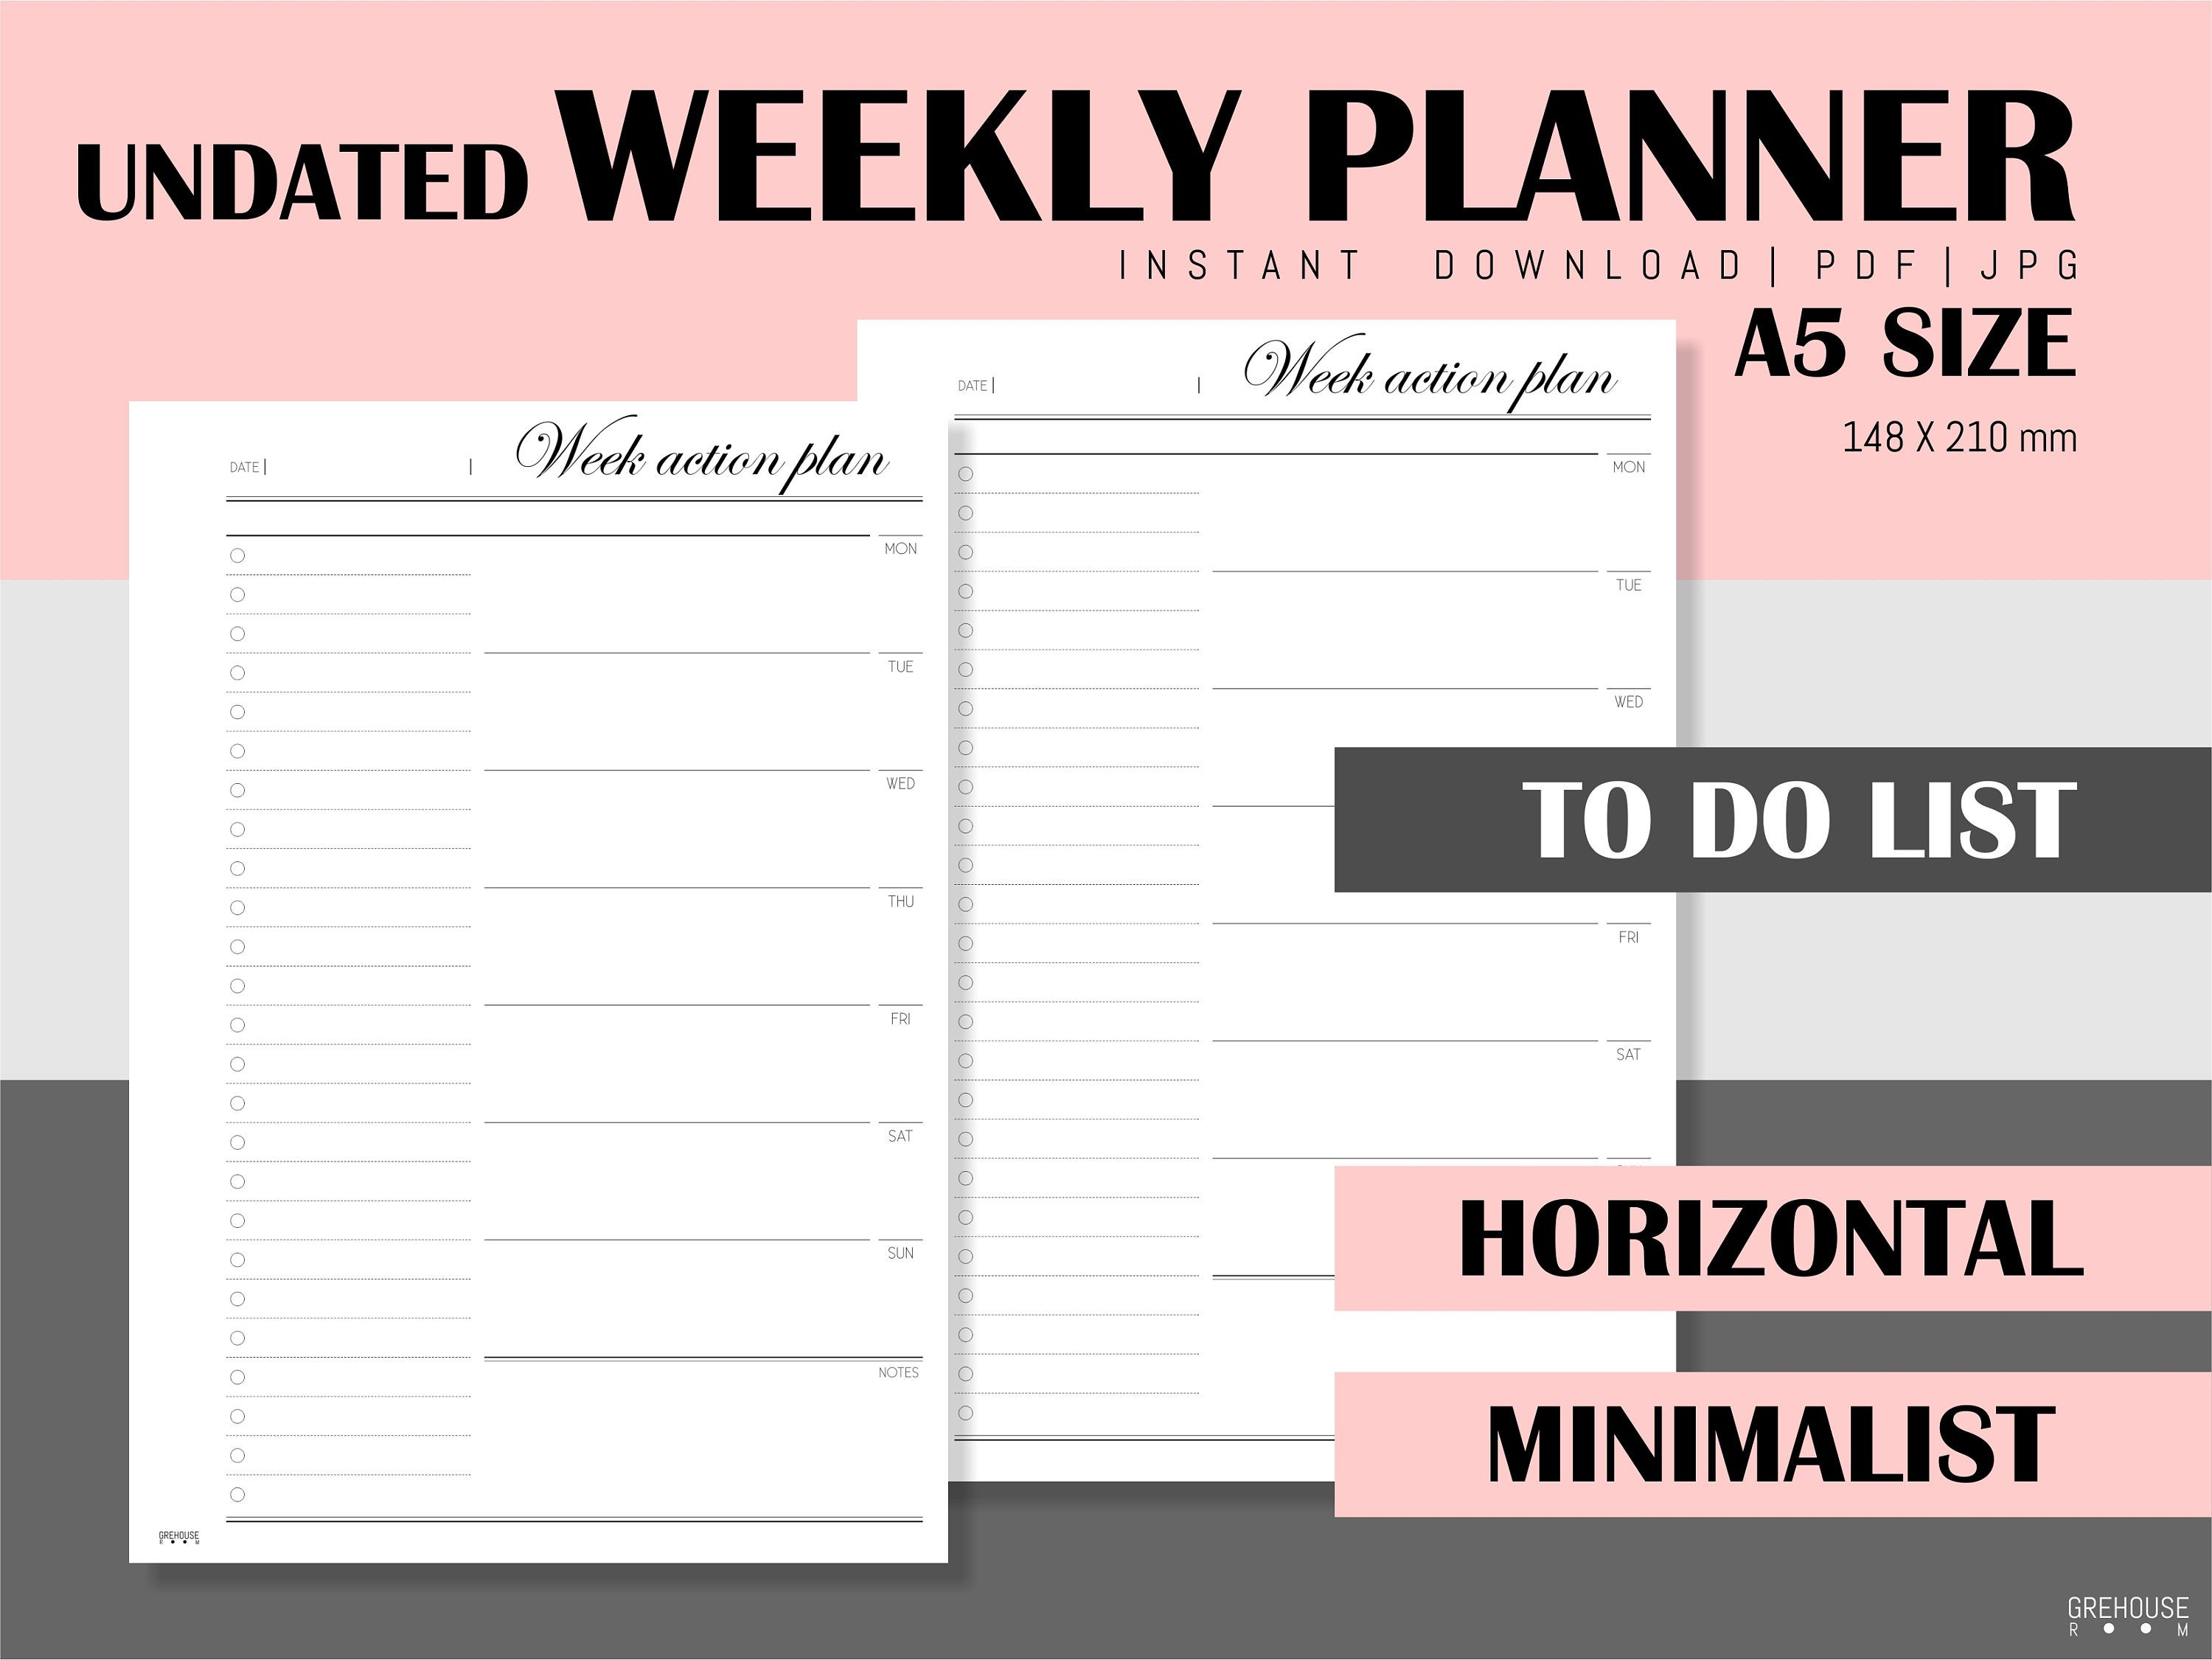 Weekly Planner Printable Filofax A5 Planner Inserts To Do List Etsy Weekly Planner Printable Undated Weekly Planner Weekly Planner